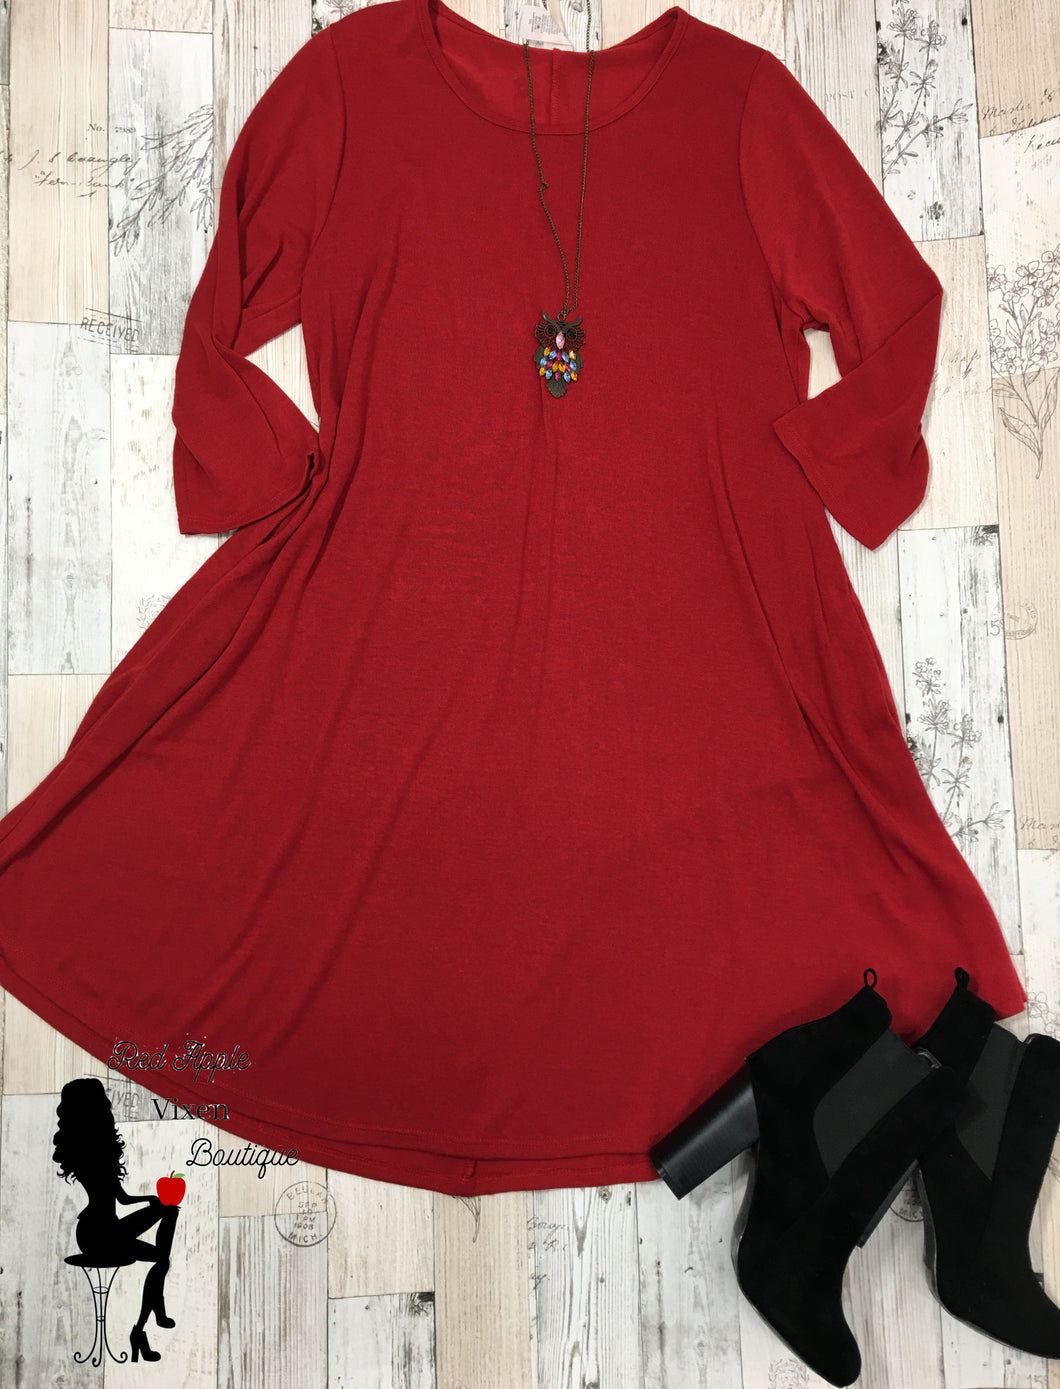 Solid Red Knit A-Line Dress - Sassy Chick Clothing